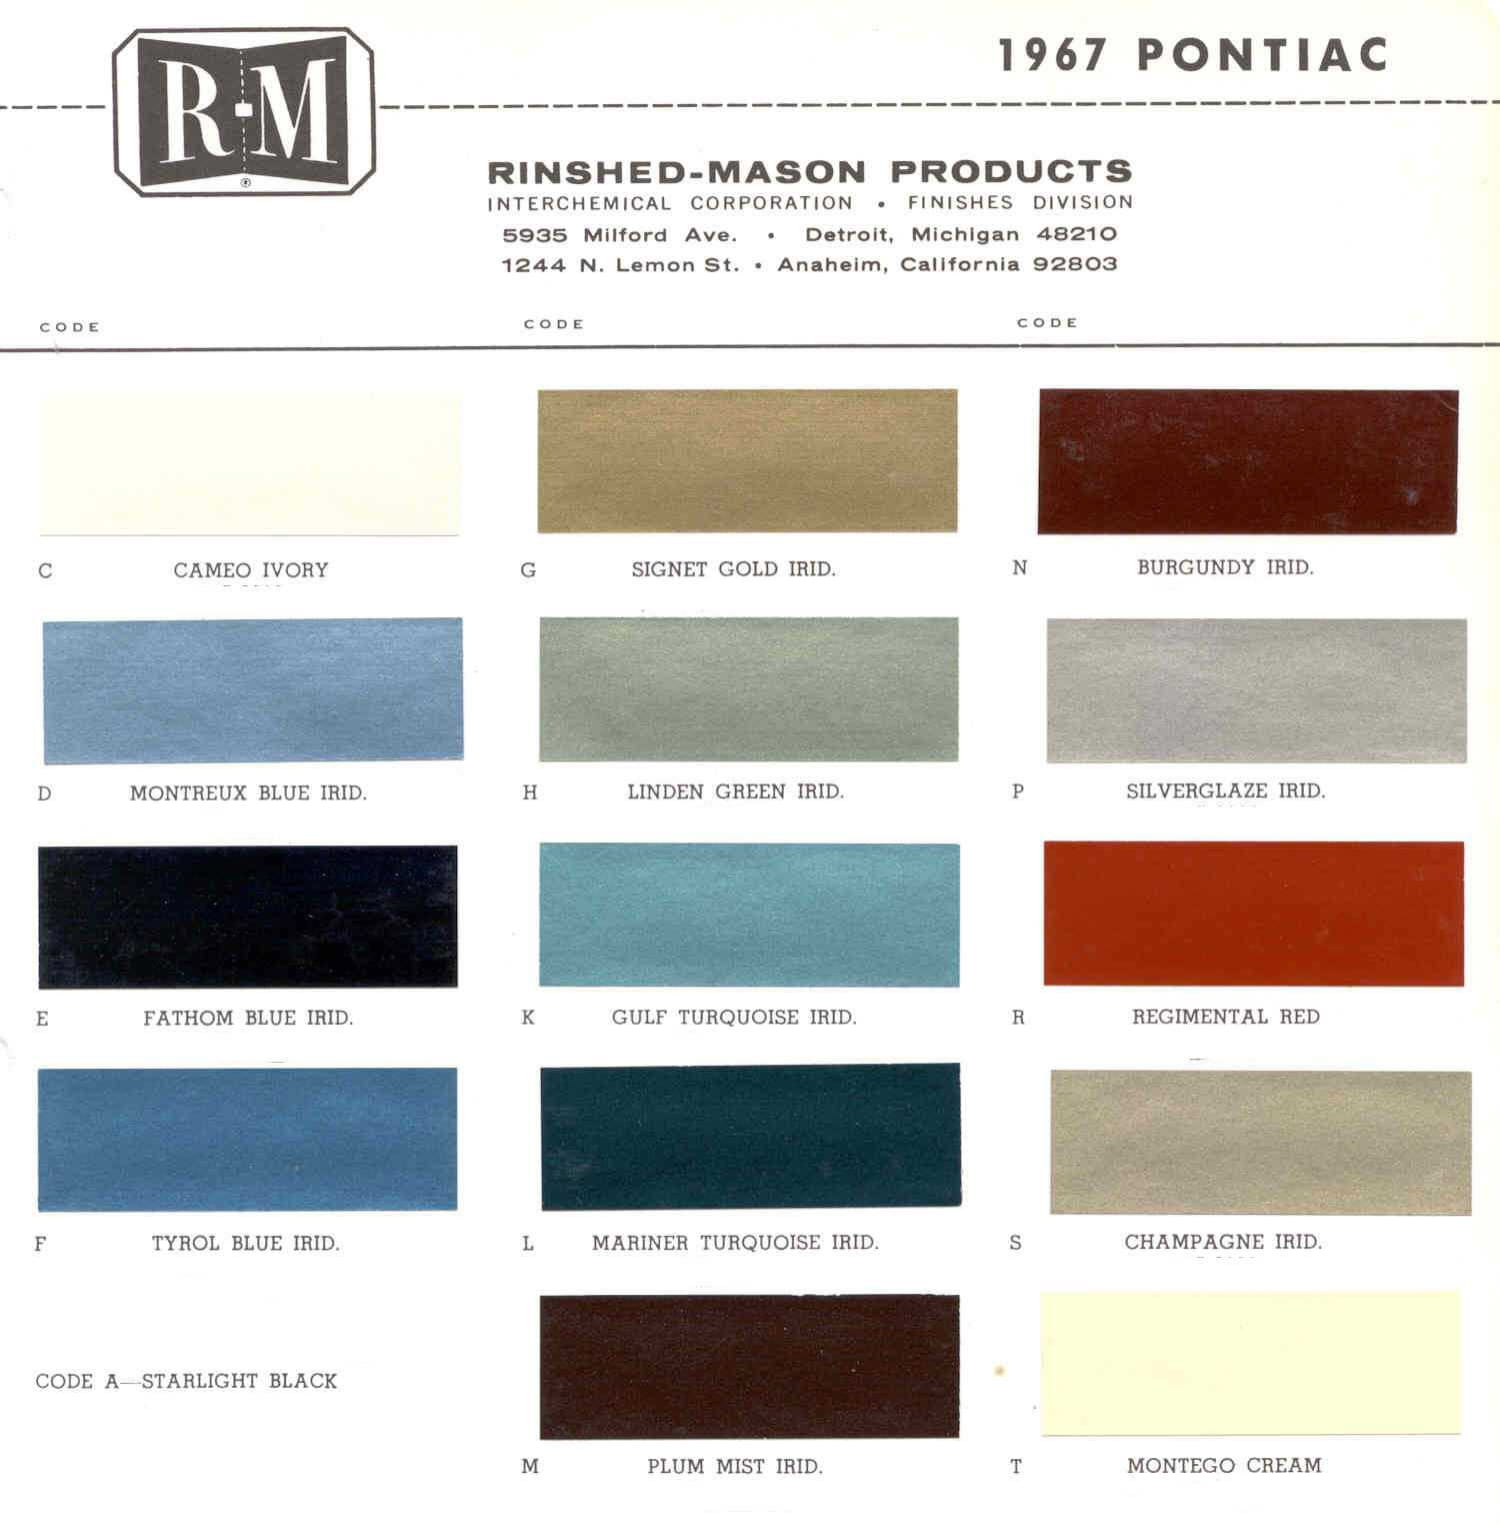 Color Code and Paint Color Chart for Pontiac in 1967